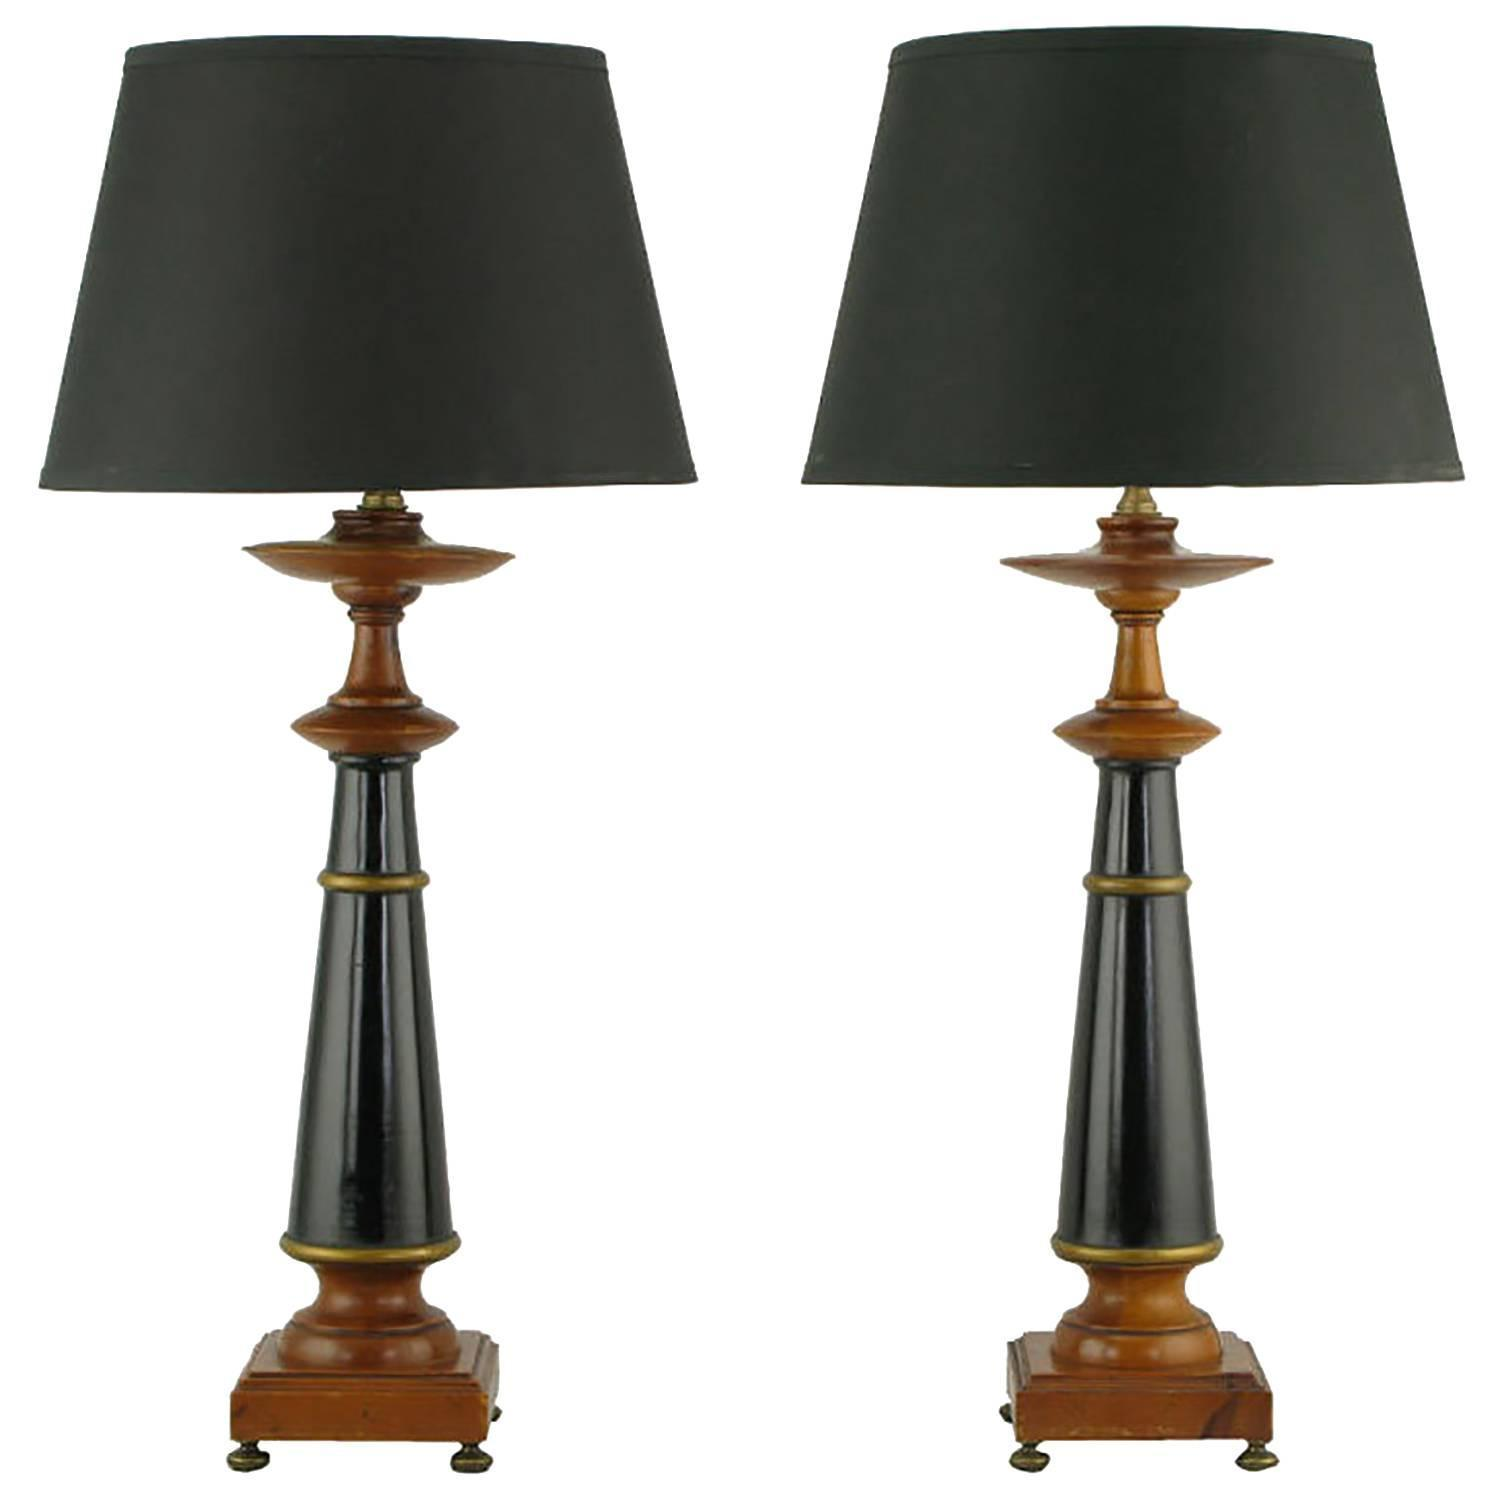 pair rembrandt wood black lacquer and gilt regency table lamps for sale at 1. Black Bedroom Furniture Sets. Home Design Ideas